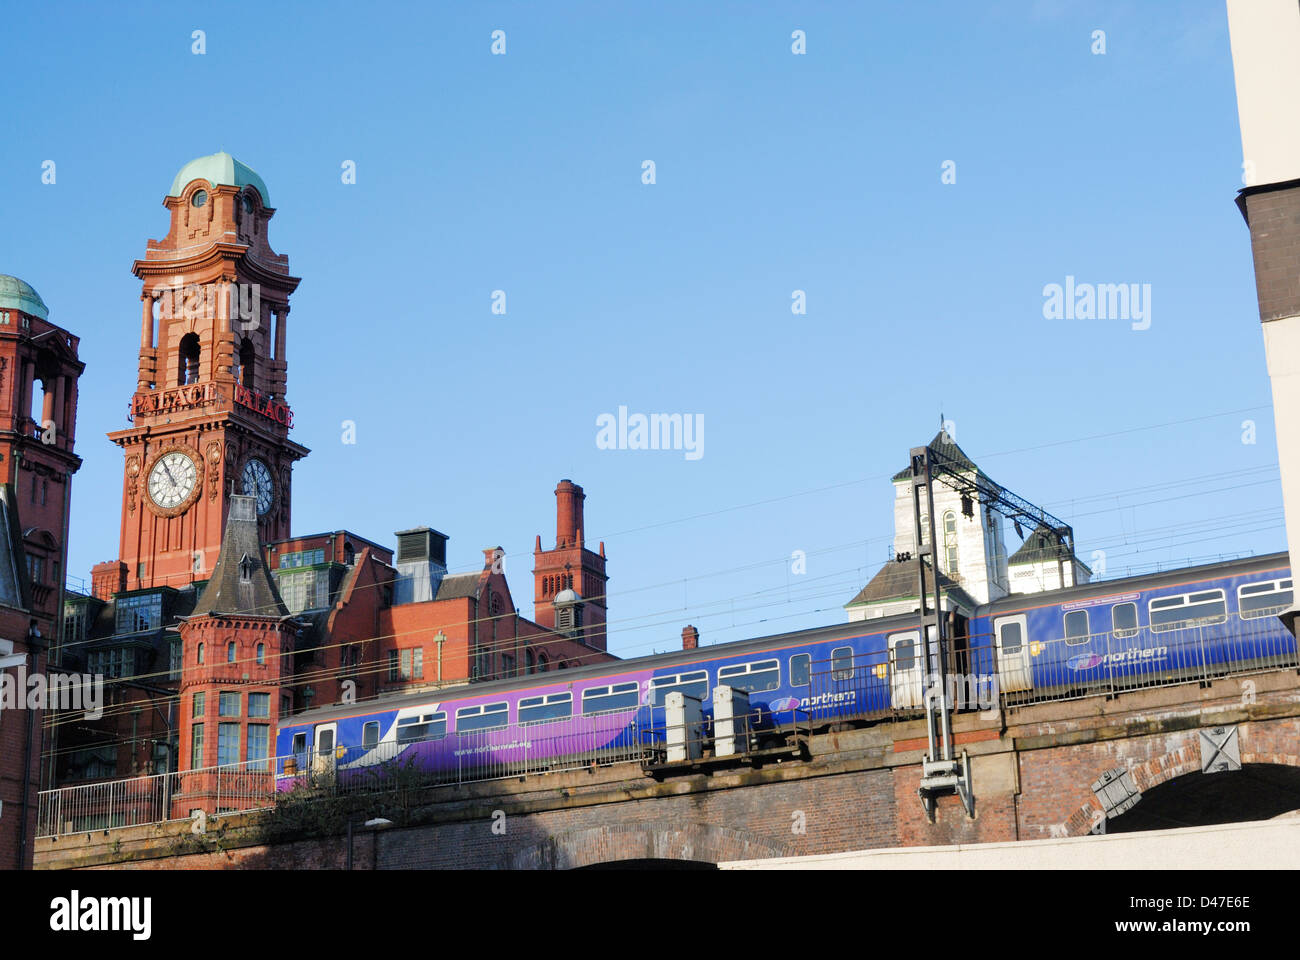 Commuter train passing through Manchester city centre by Oxford Road with the Refuge Building in the background. - Stock Image